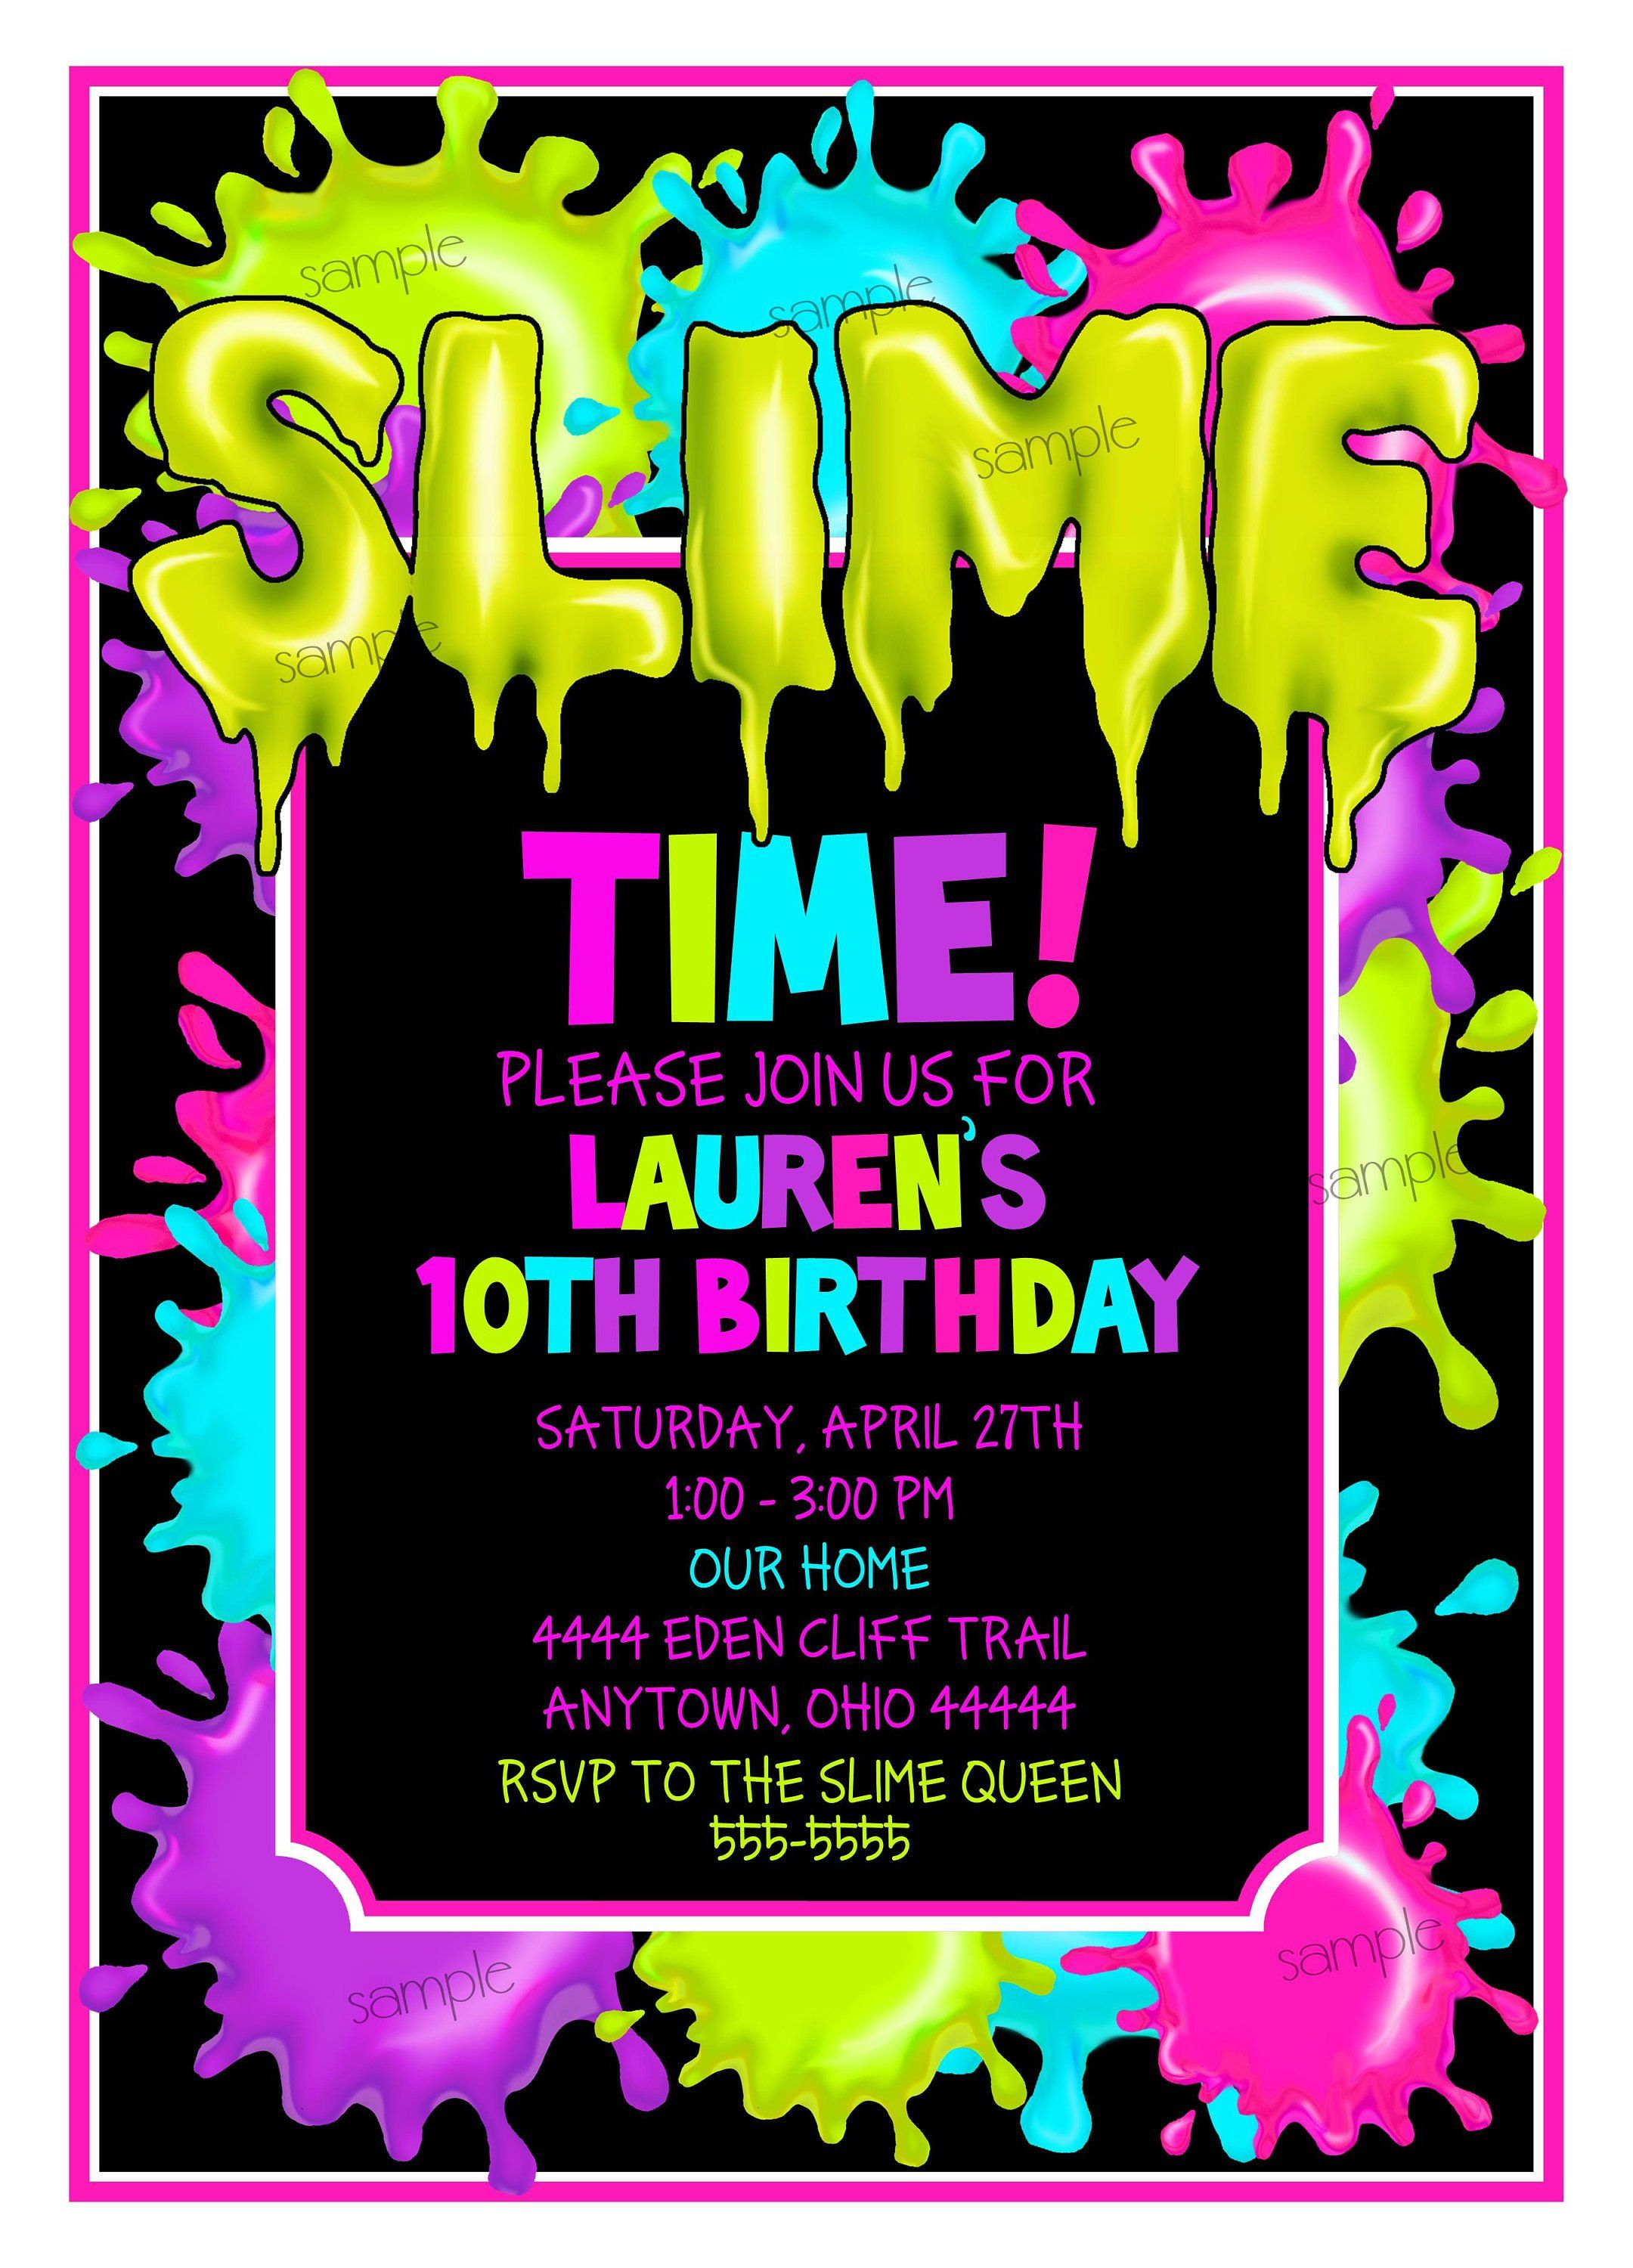 Slime Invitations Slime Birthday Party Slime Party Slime Etsy Slime Birthday Slime Party Birthday Party Invitations Diy